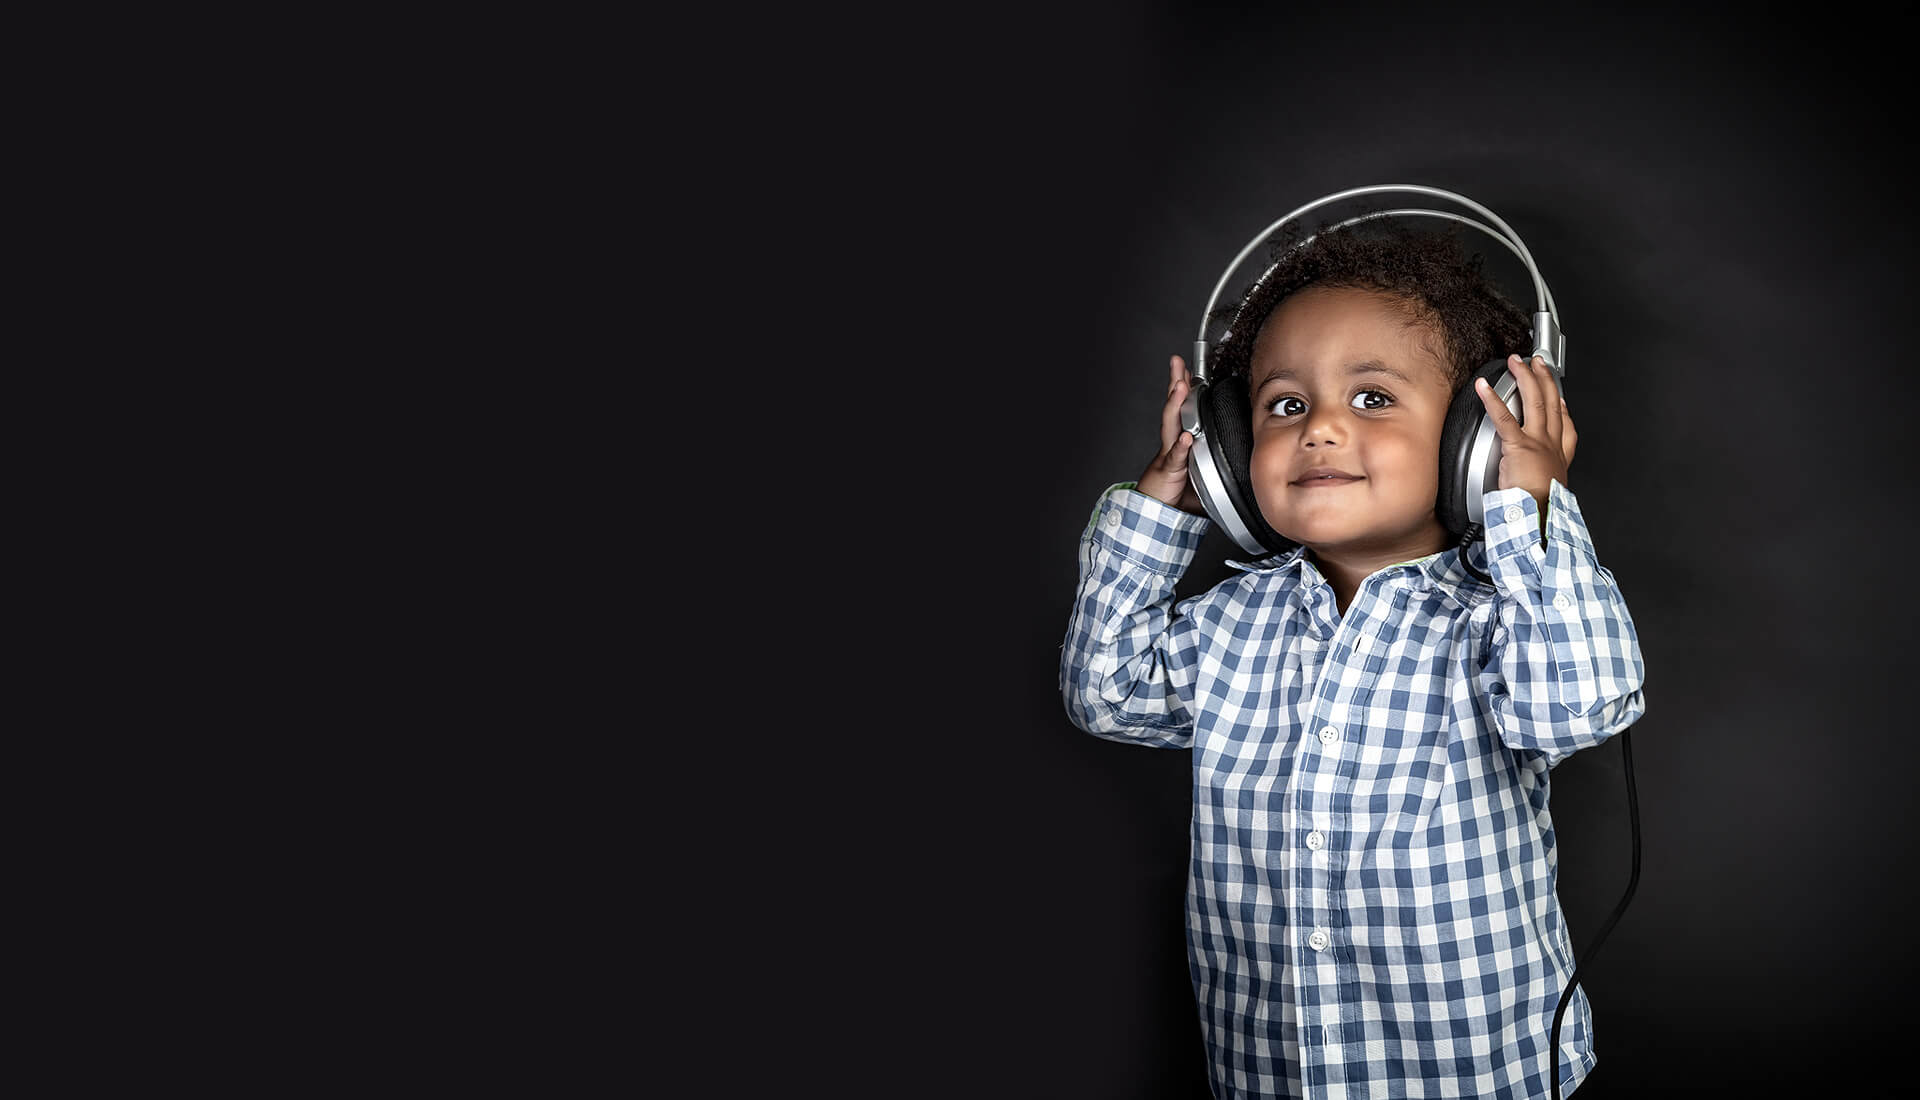 The impacts of hearing difficulties upon speech and language development